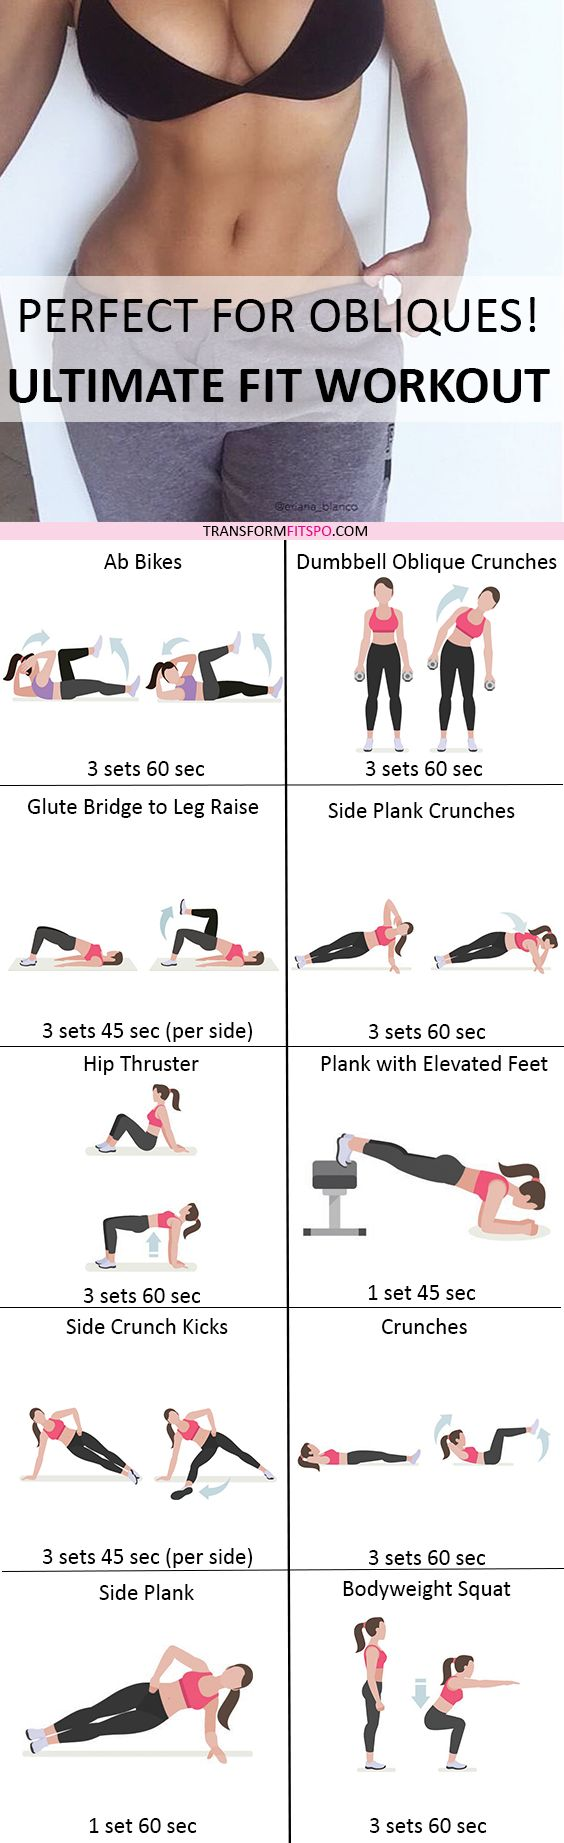 Repin and share if this workout worked wonders for your core! Read the post for all the workout information! 1 Yoga Tip For a Tiny Belly...